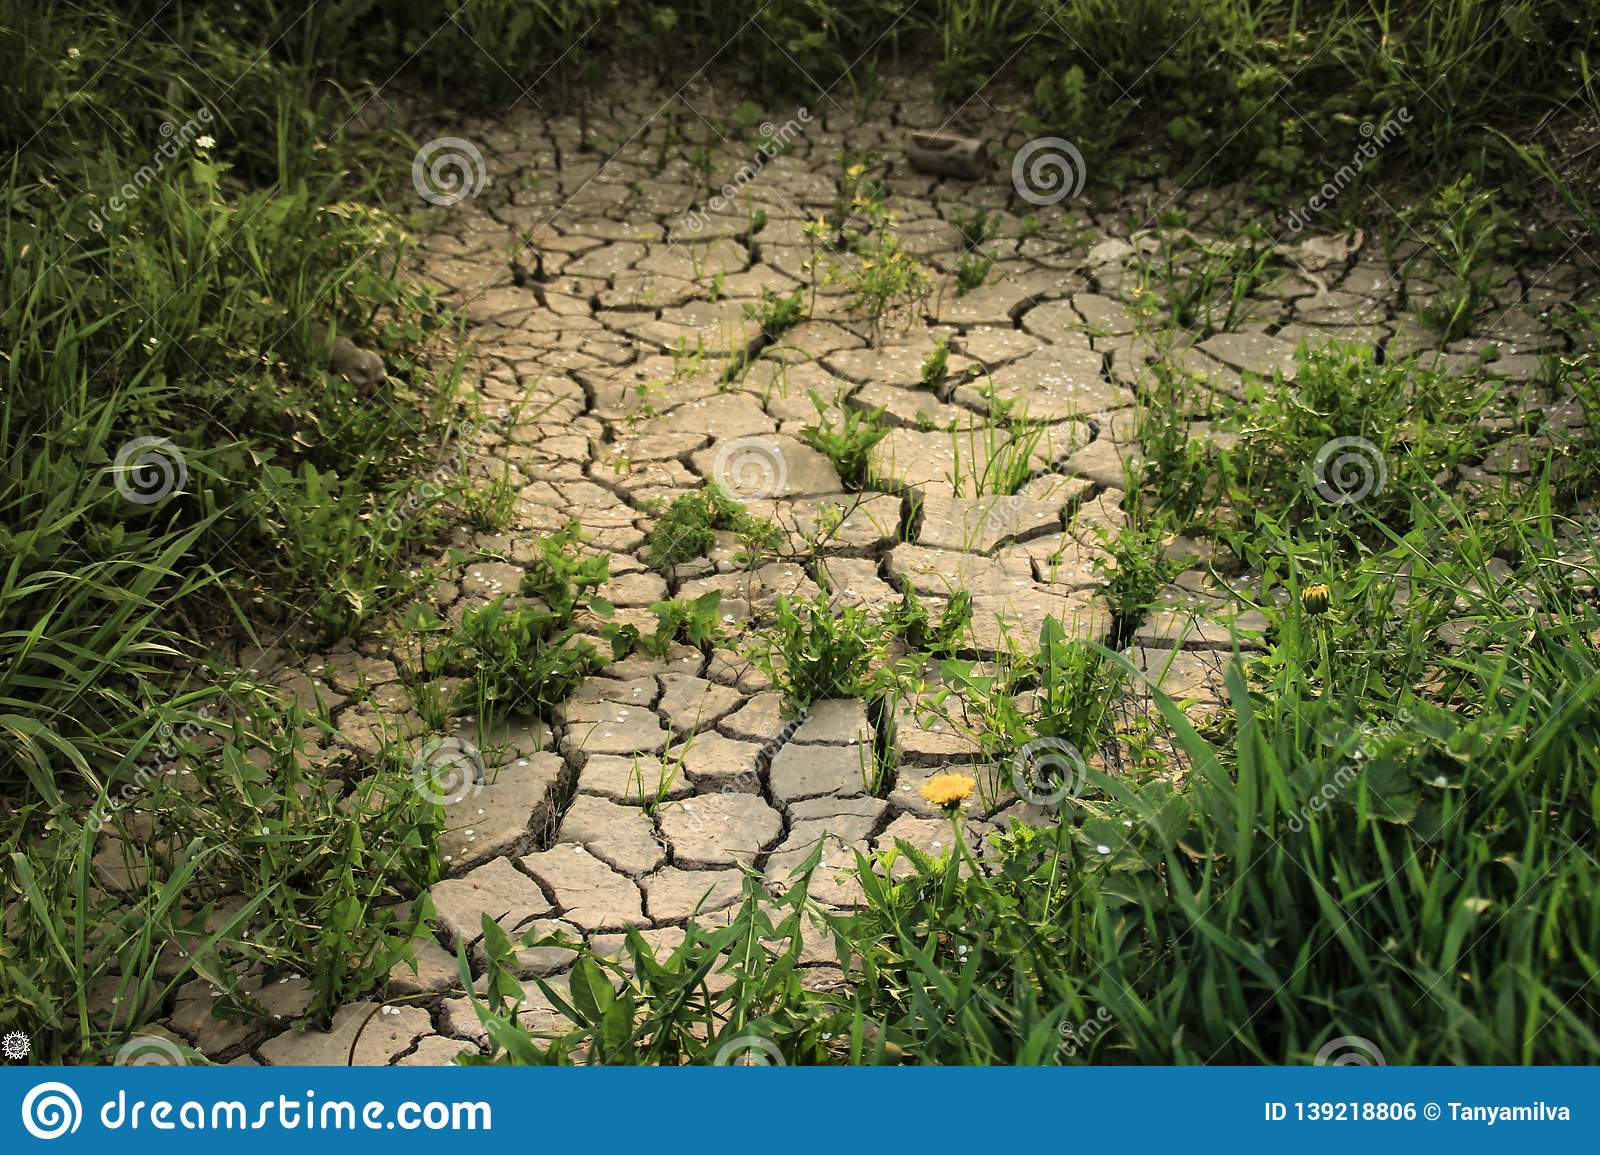 Thick green grass grows among dry cracked earth